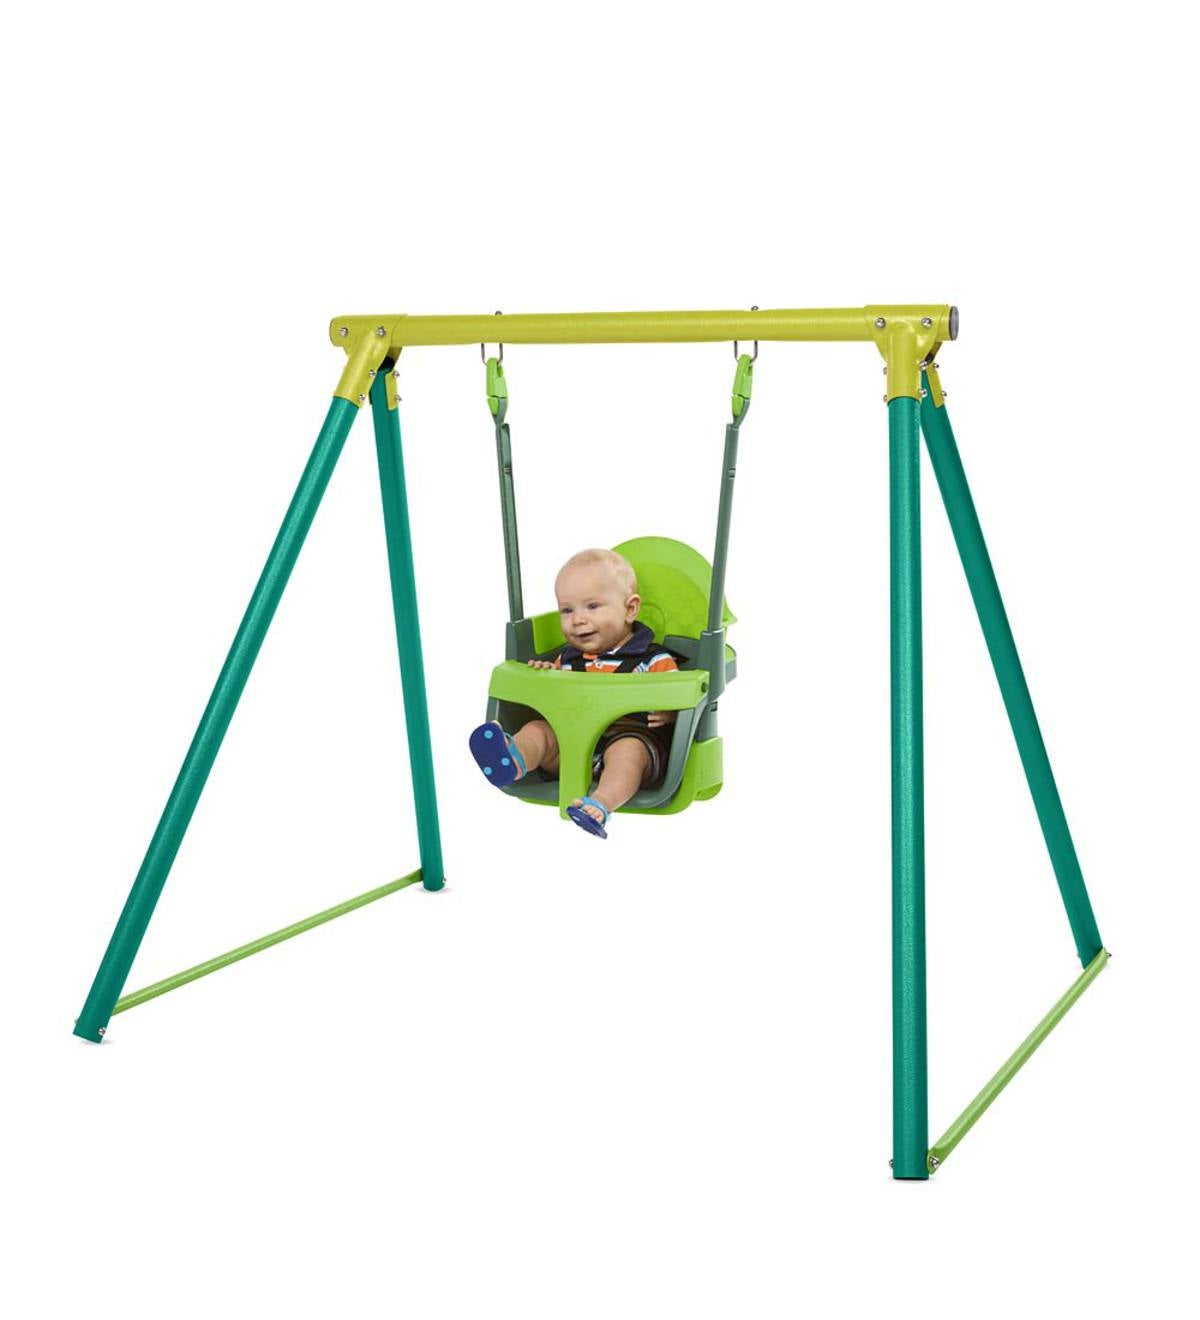 Quadpod Swing and Adjustable Swing Stand Special | Swings & Climbing ...